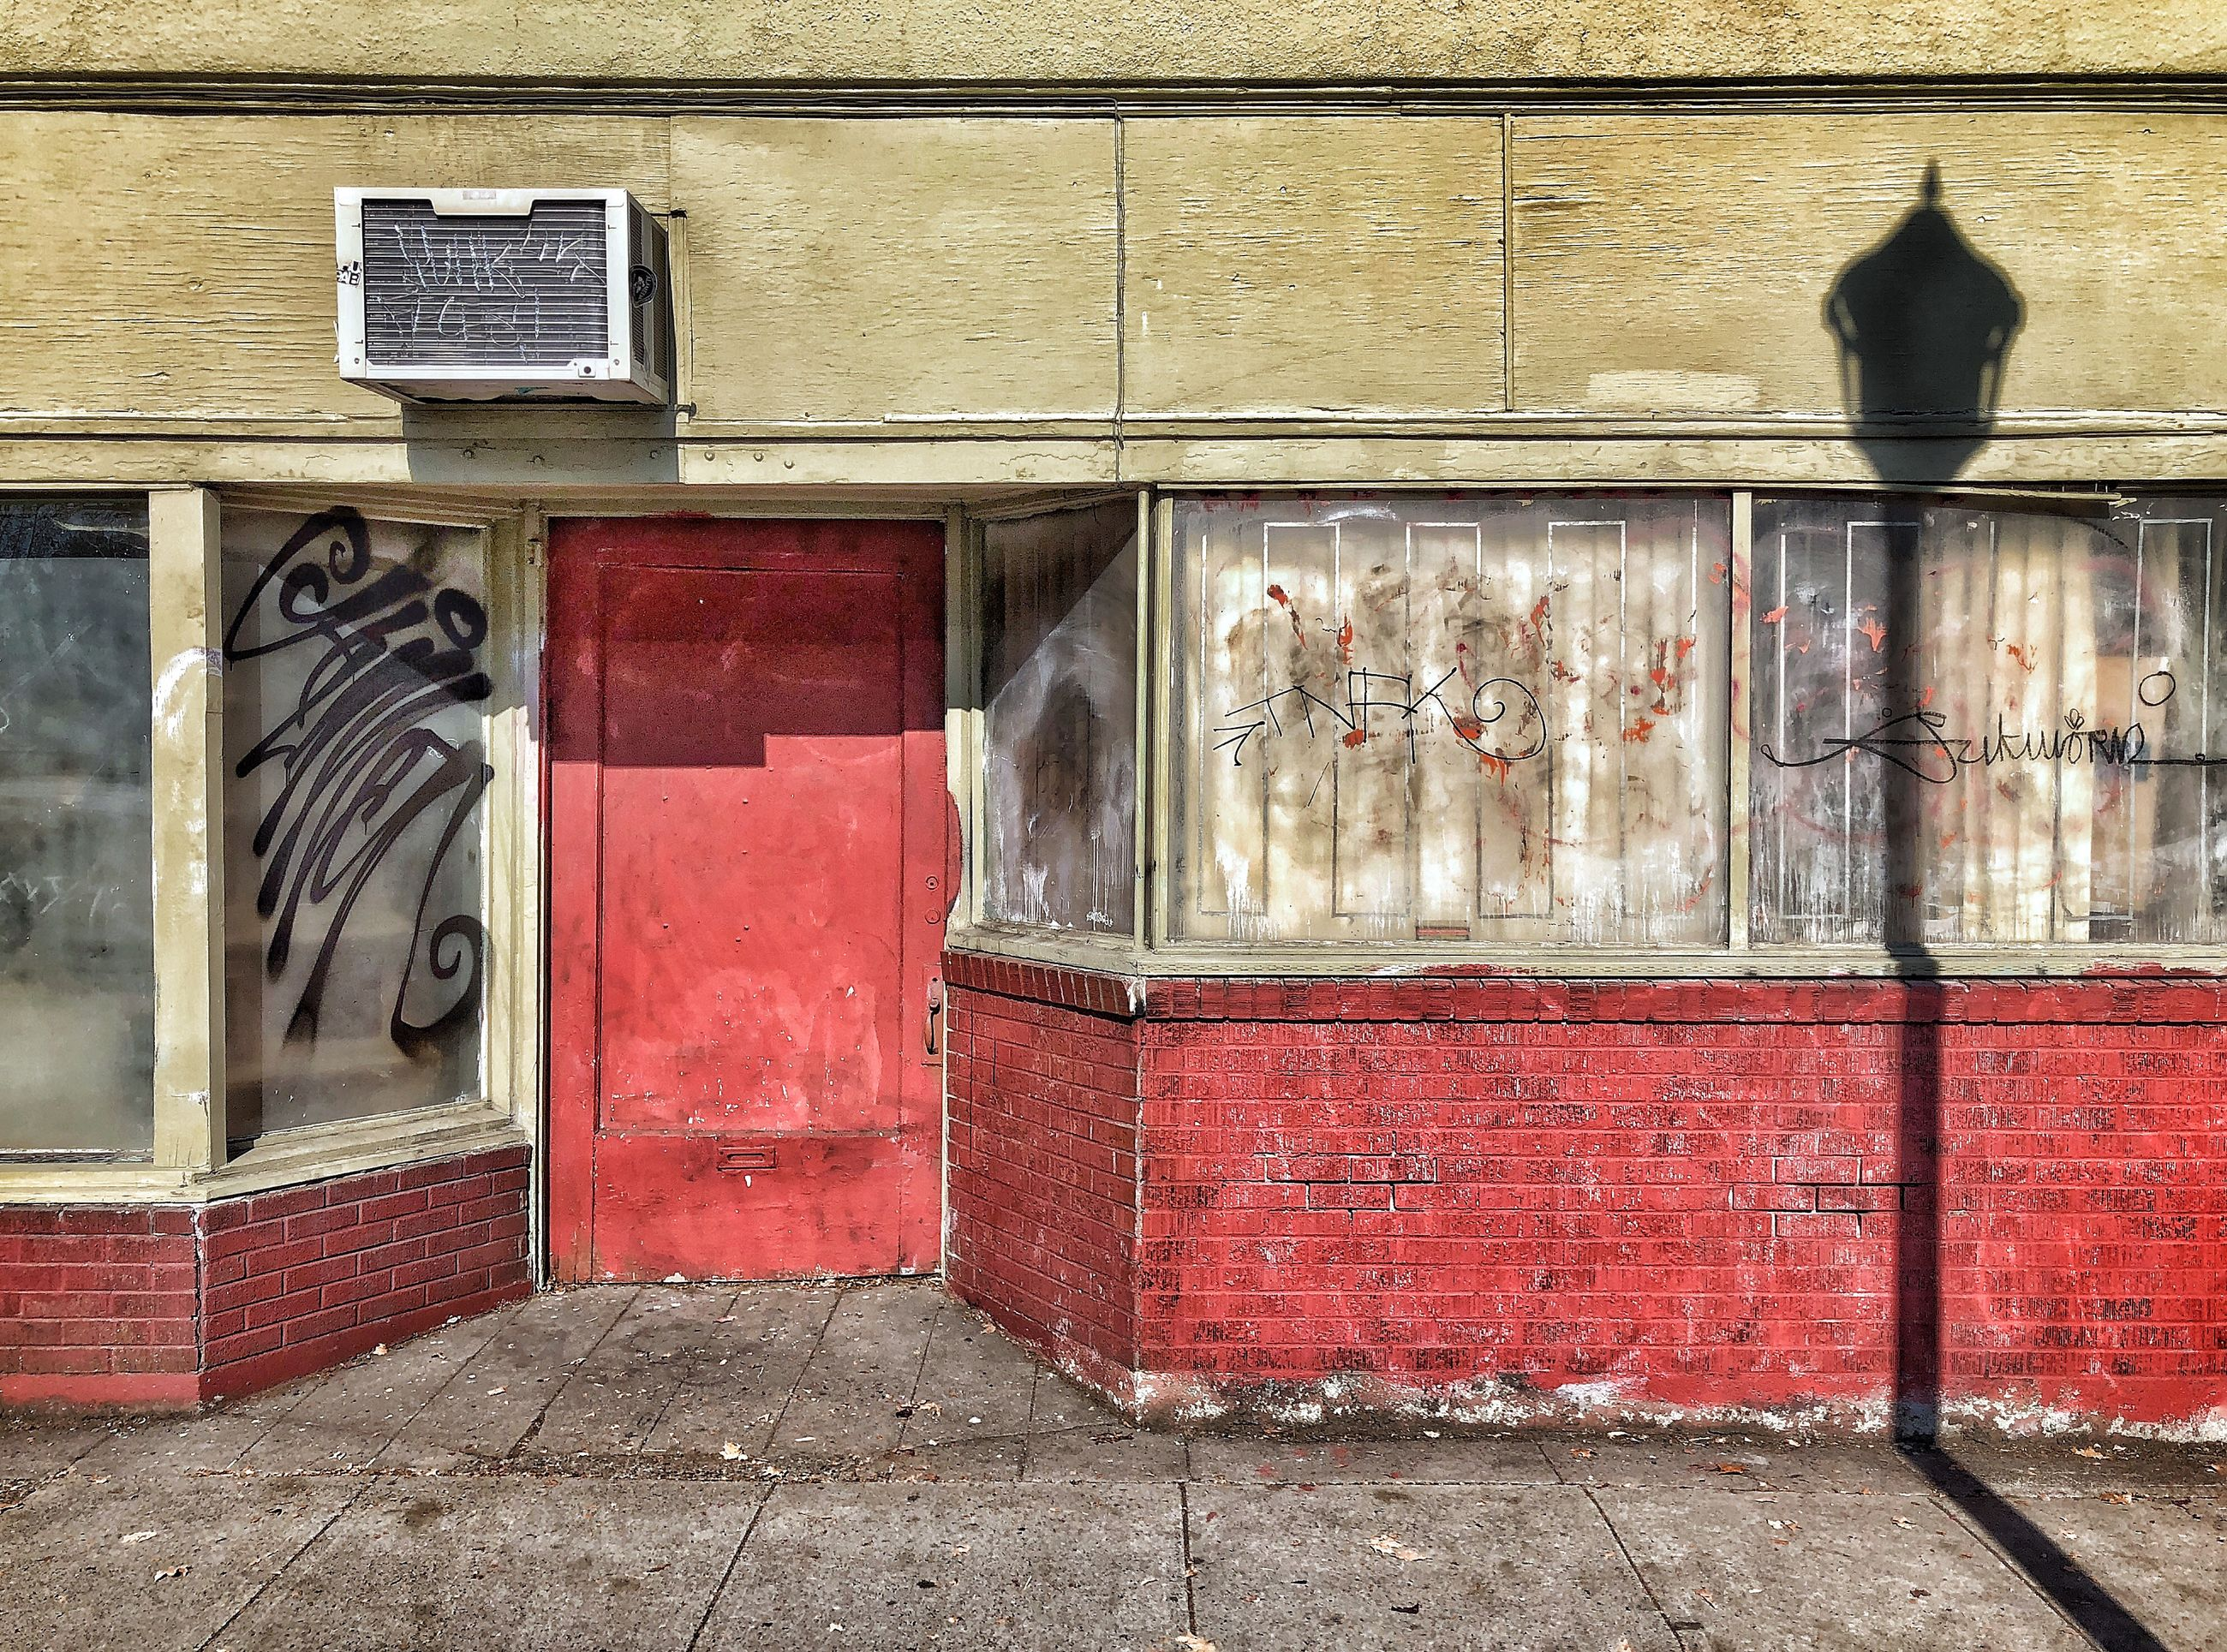 architecture, built structure, building exterior, day, no people, building, wall - building feature, red, window, door, outdoors, entrance, glass - material, old, wall, closed, sunlight, city, reflection, brick wall, brick, glass